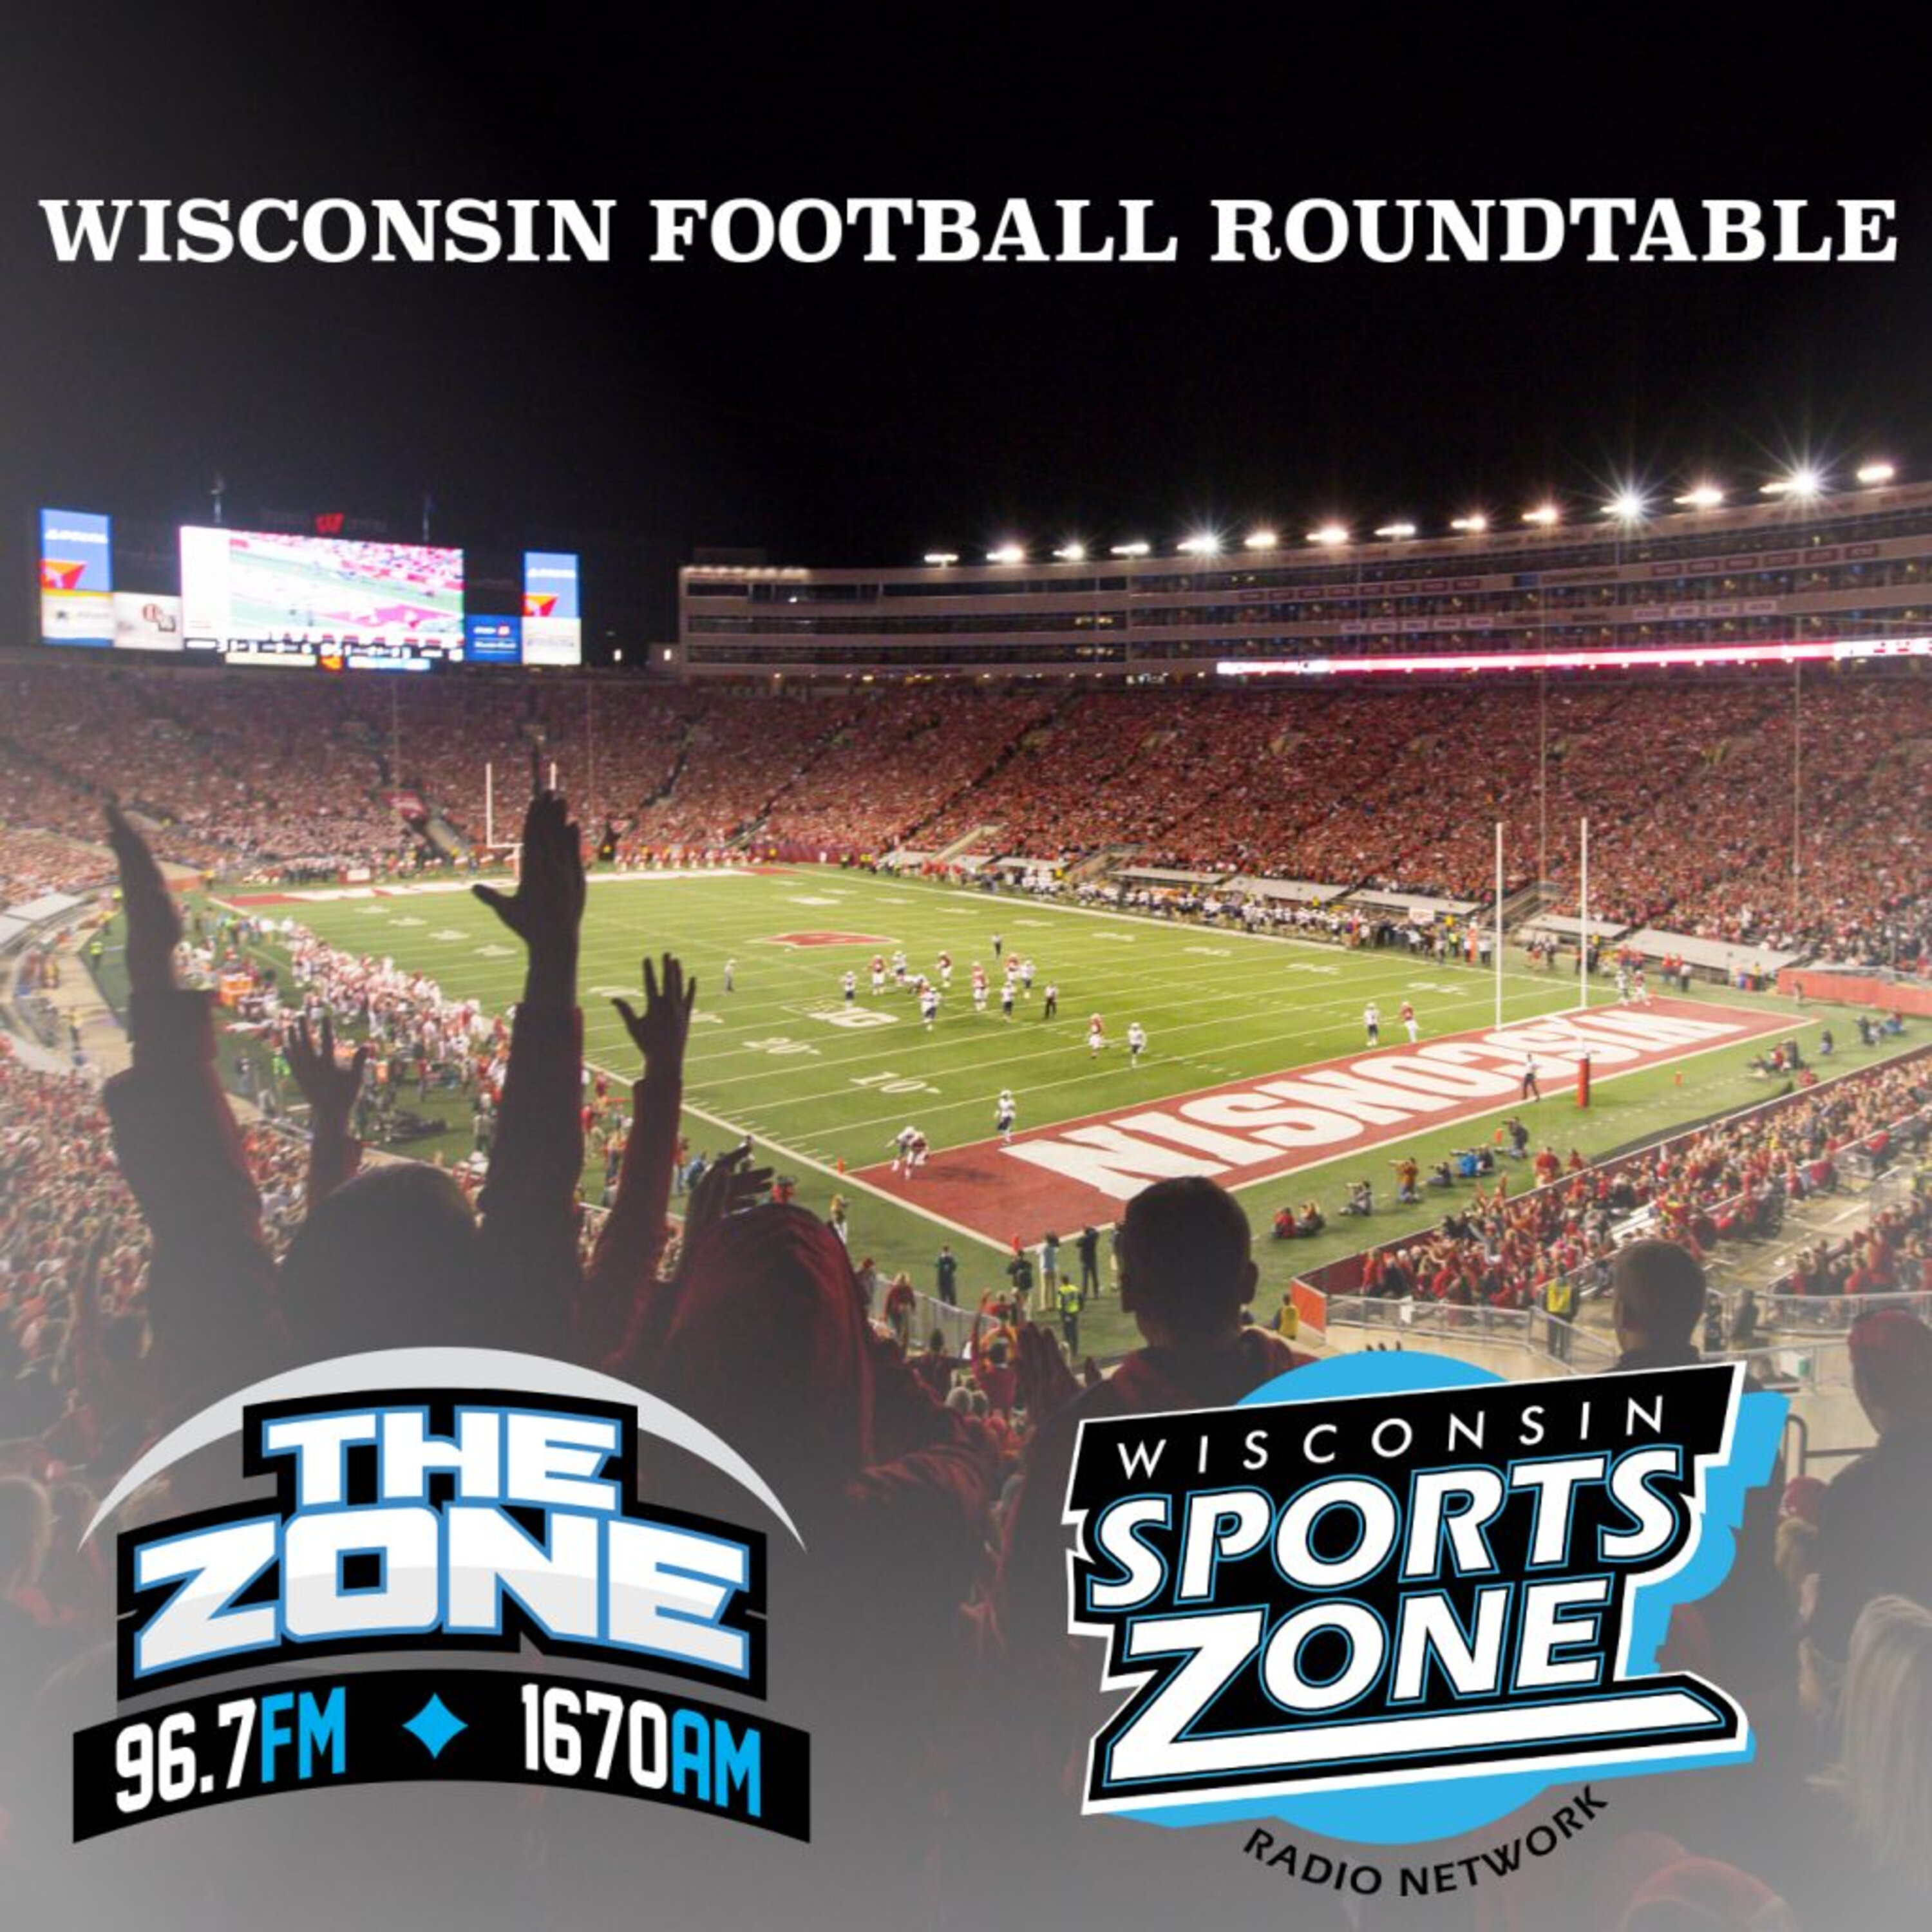 Wisconsin Football Roundtable: Oct. 17, 2019